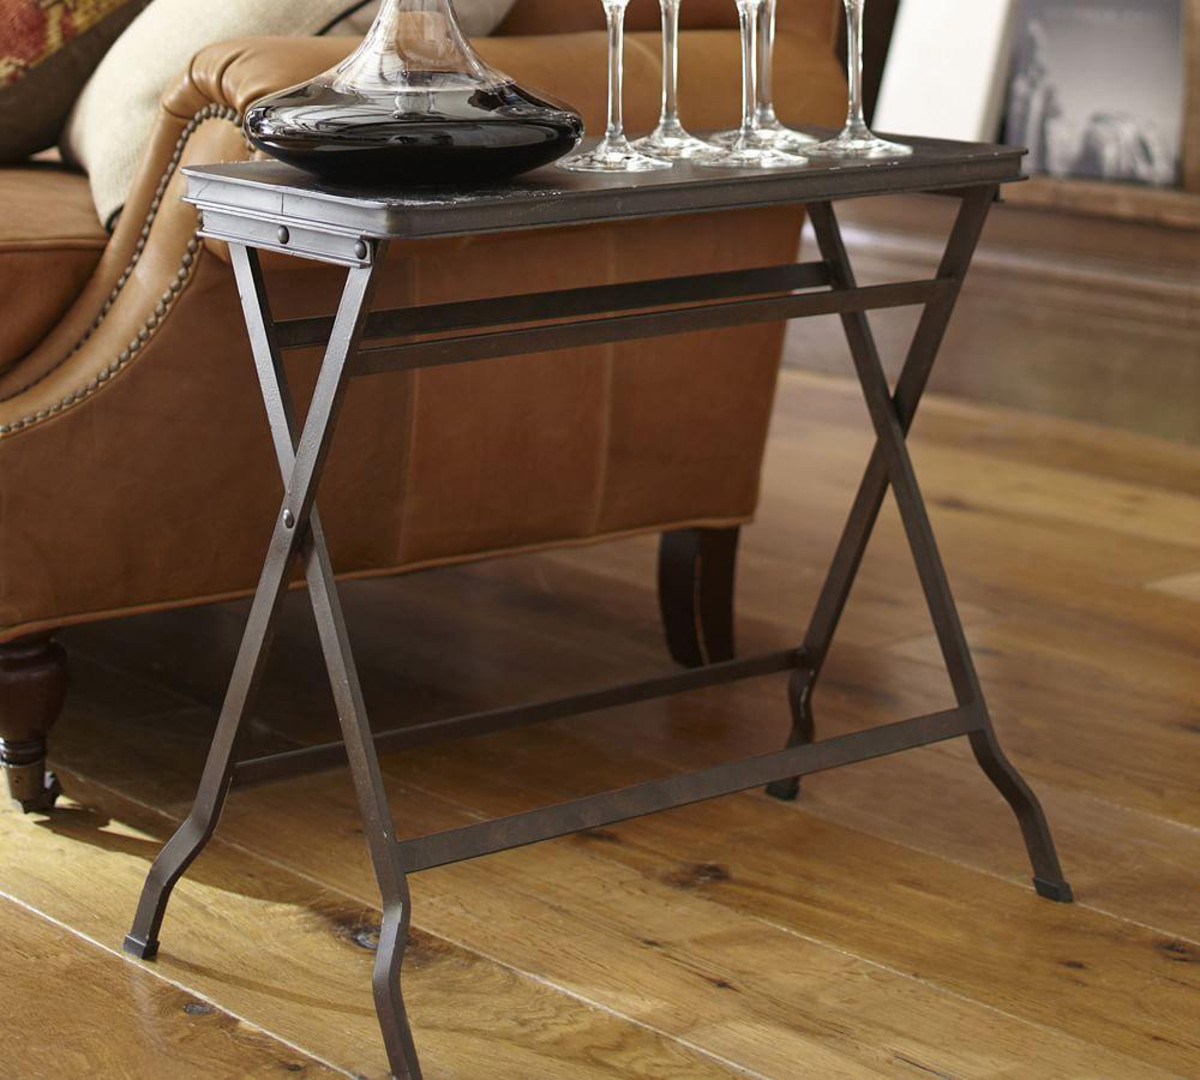 carter metal folding tray table pottery barn media accent tables large silver wall clock card tablecloth inch wide patio furniture montreal outdoor pool umbrellas brown marble